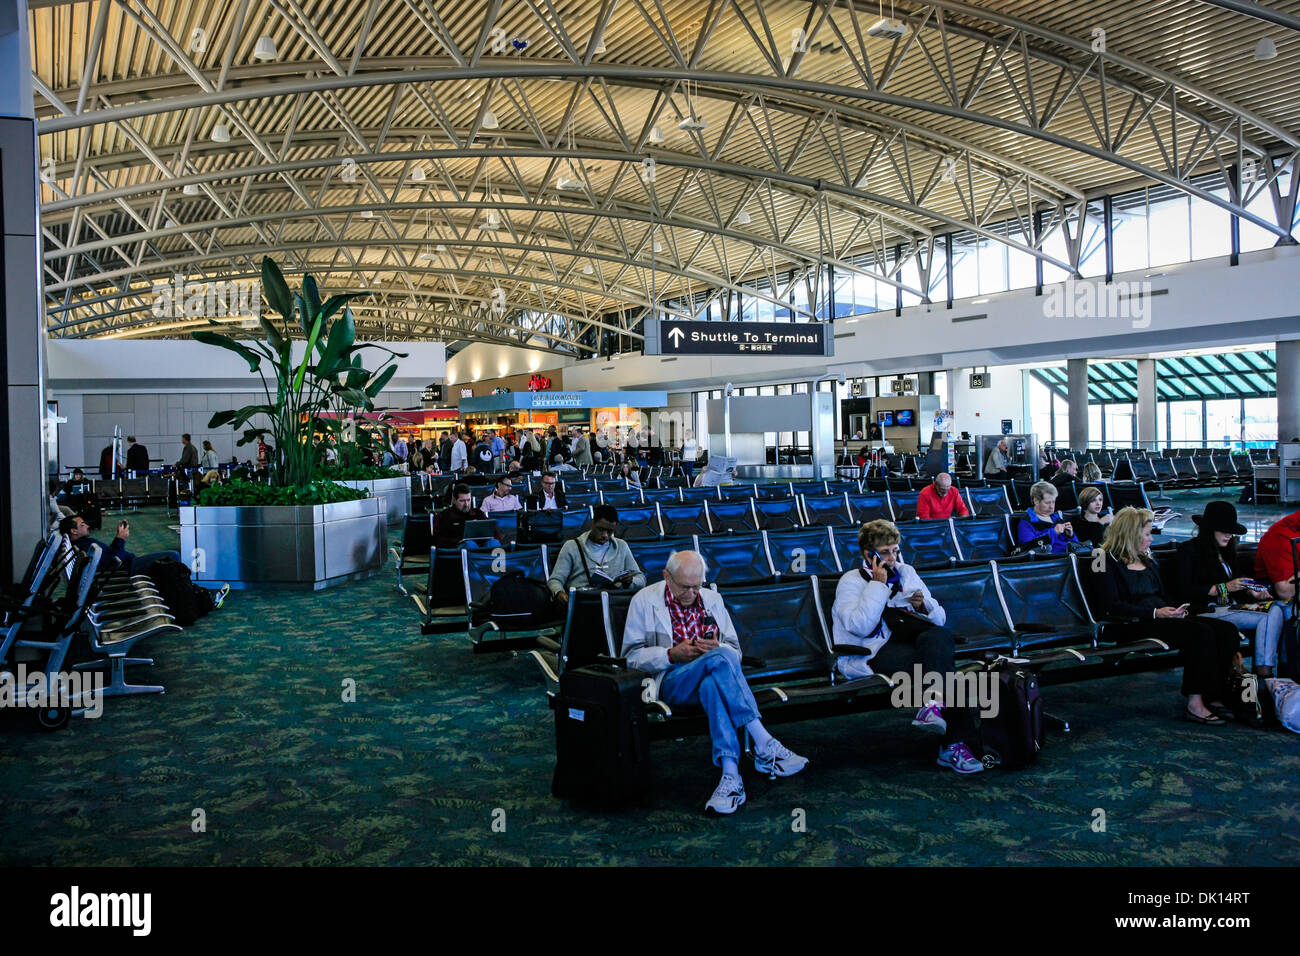 People in the departure lounge at Tampa Airport waiting for their flights - Stock Image